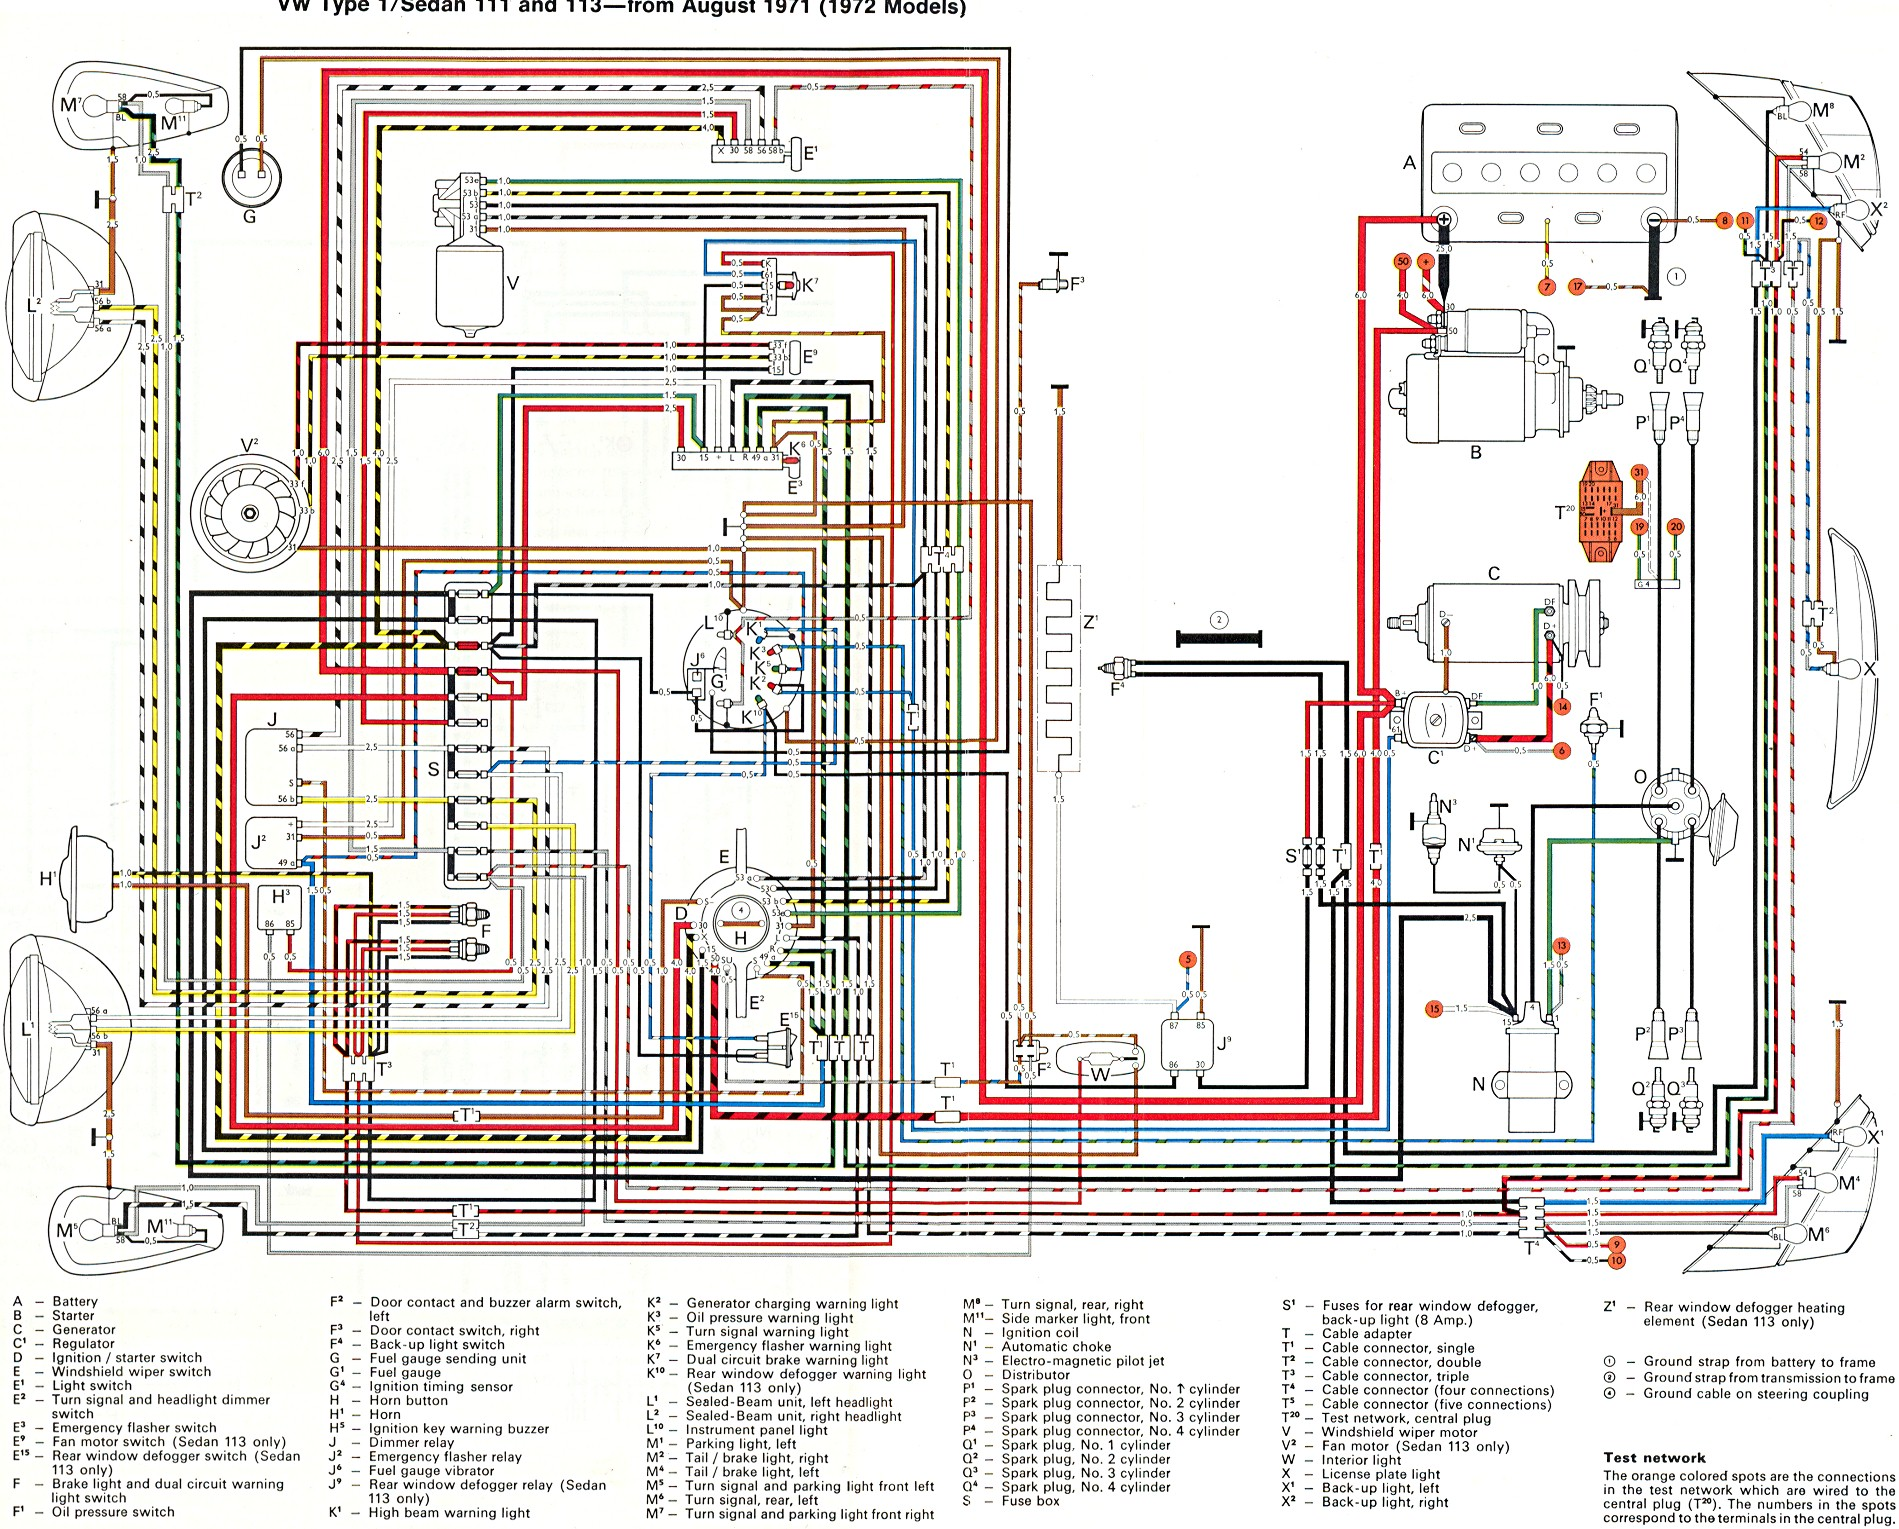 vw autostick engine wiring diagram vw discover your wiring vw beetle window wiring diagram vw wiring diagrams for automotive